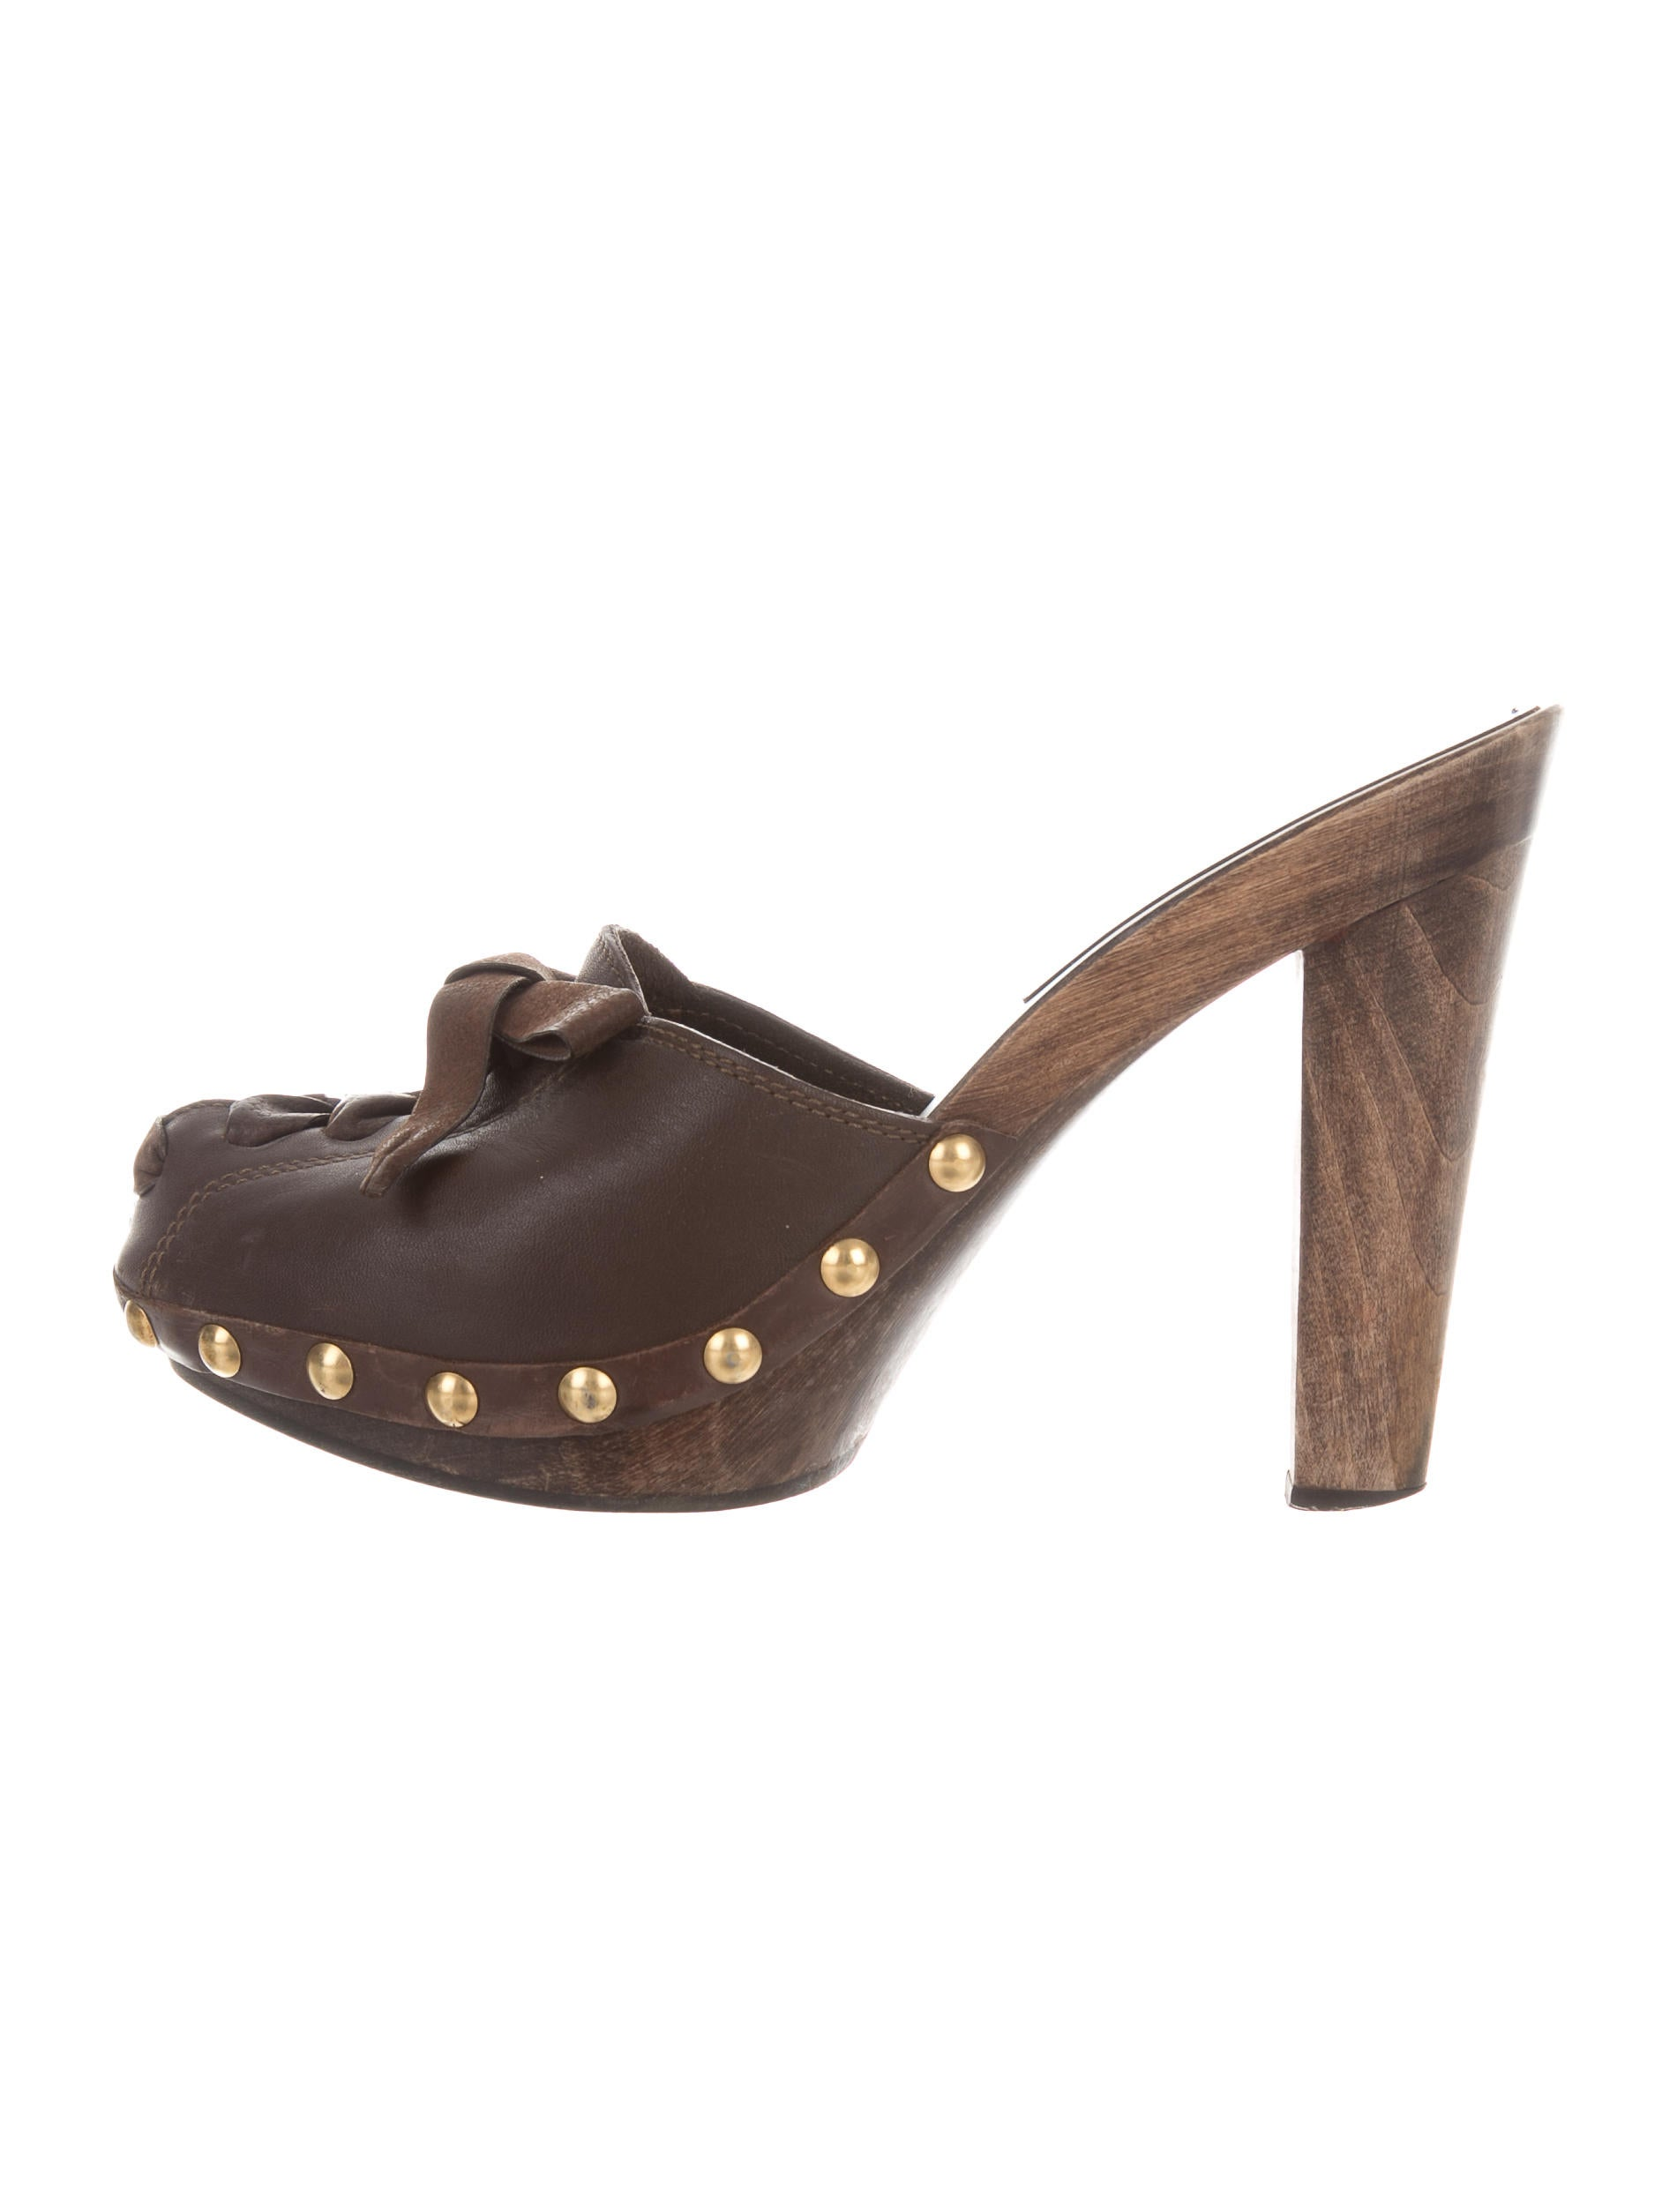 Miu Miu Leather Embellished Clogs free shipping brand new unisex free shipping view r1GeP